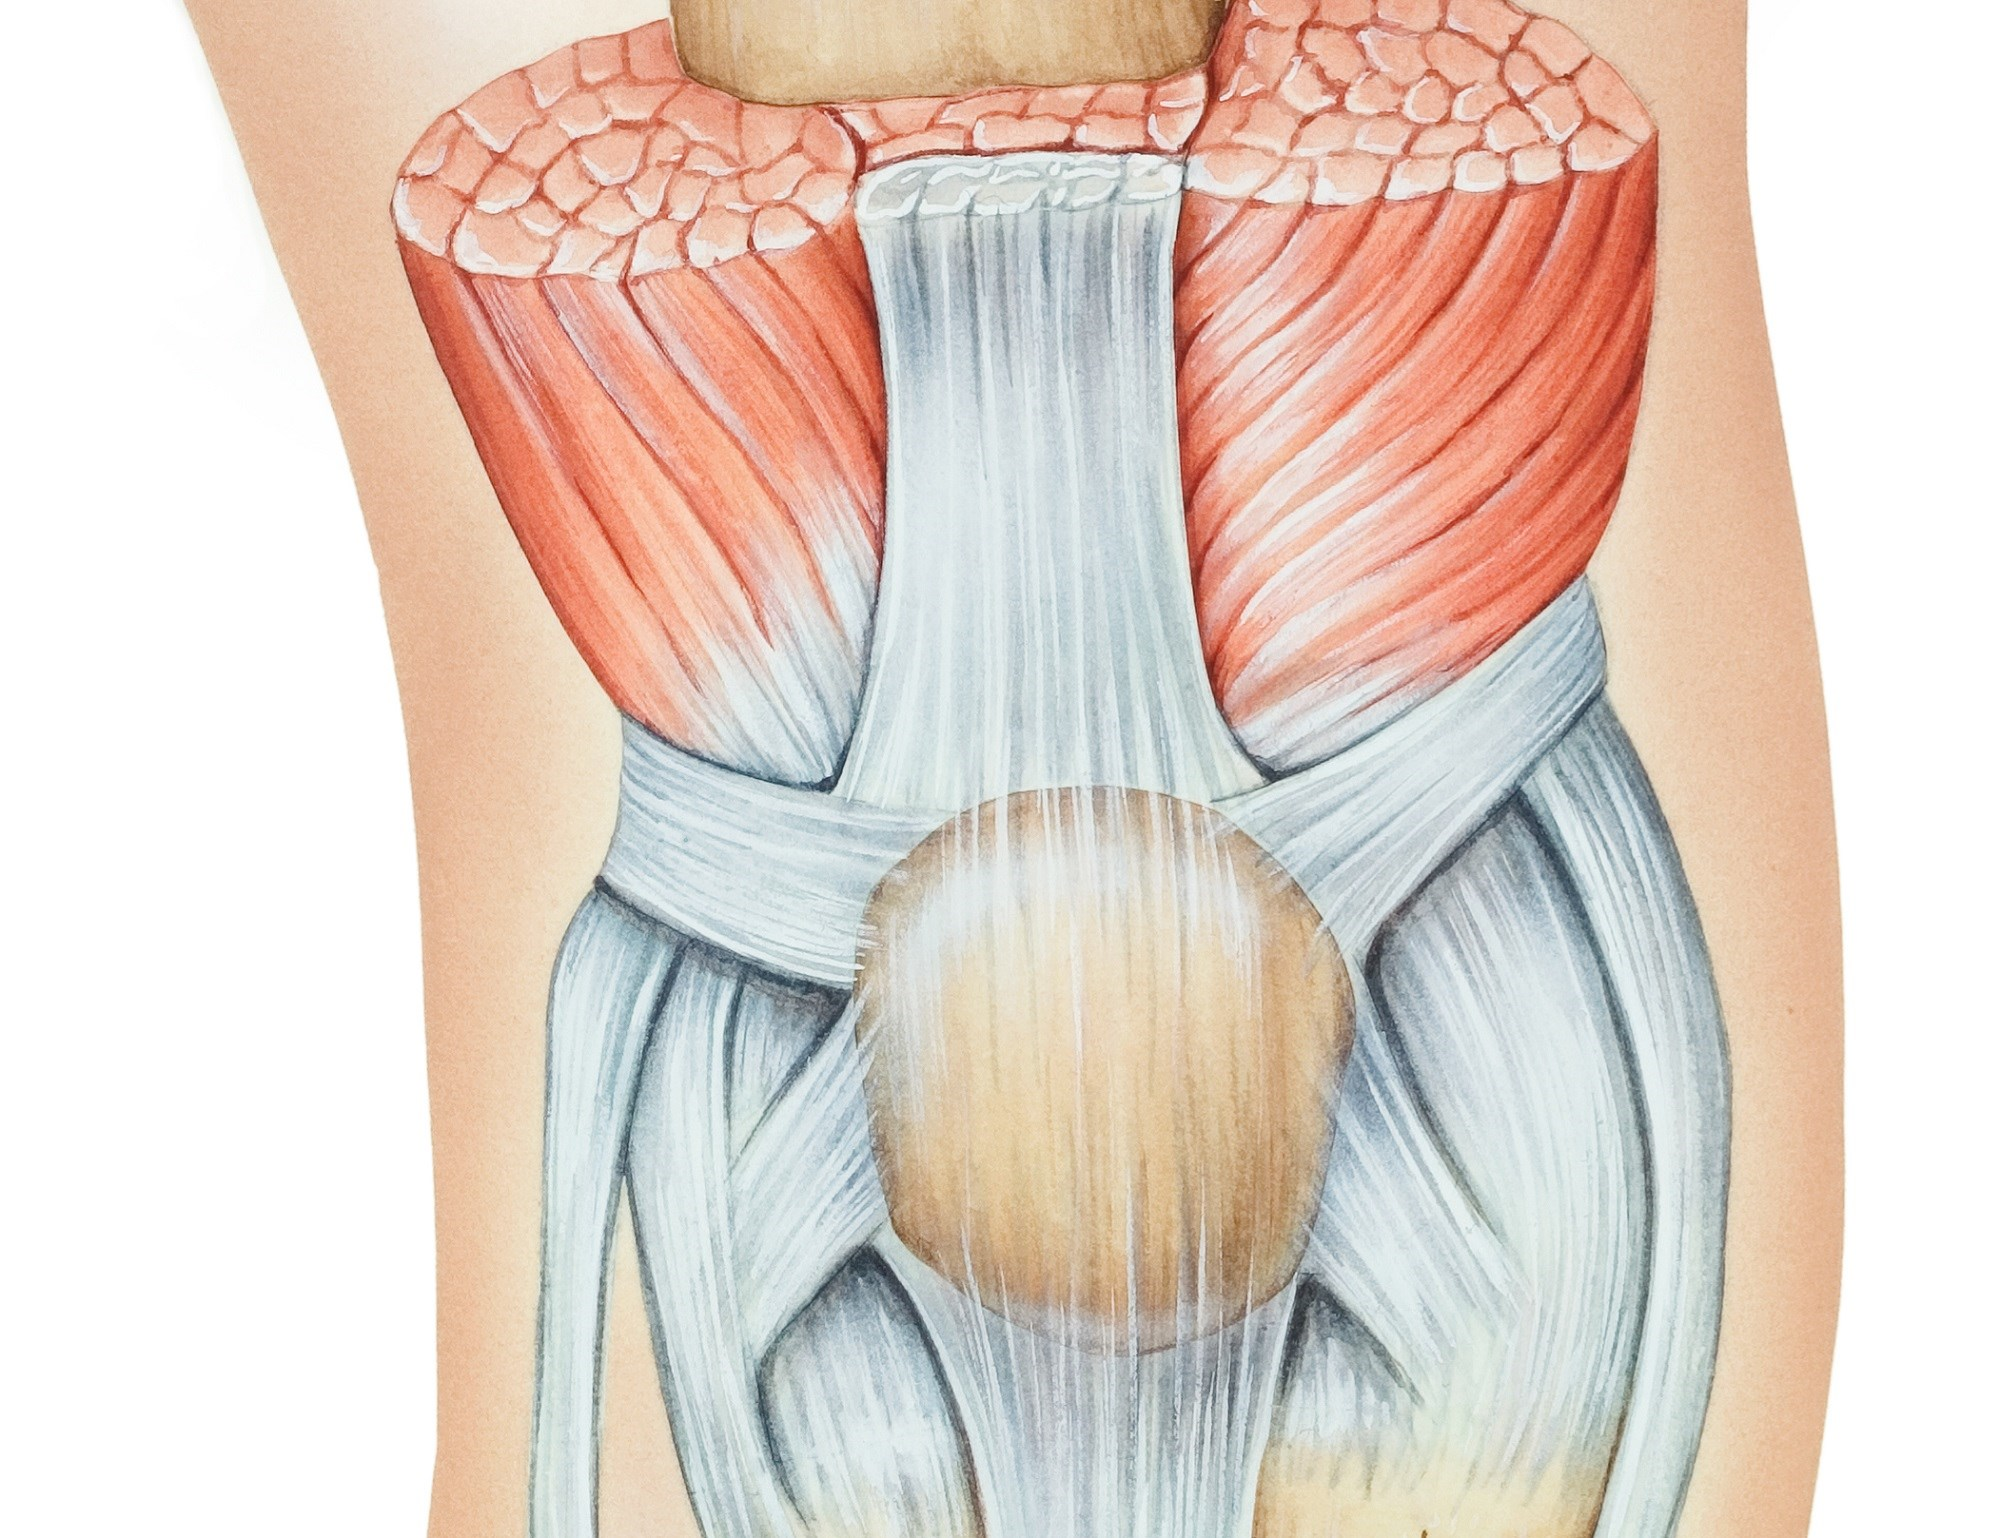 Pain Processing May Be Altered in Women With Patellofemoral Pain